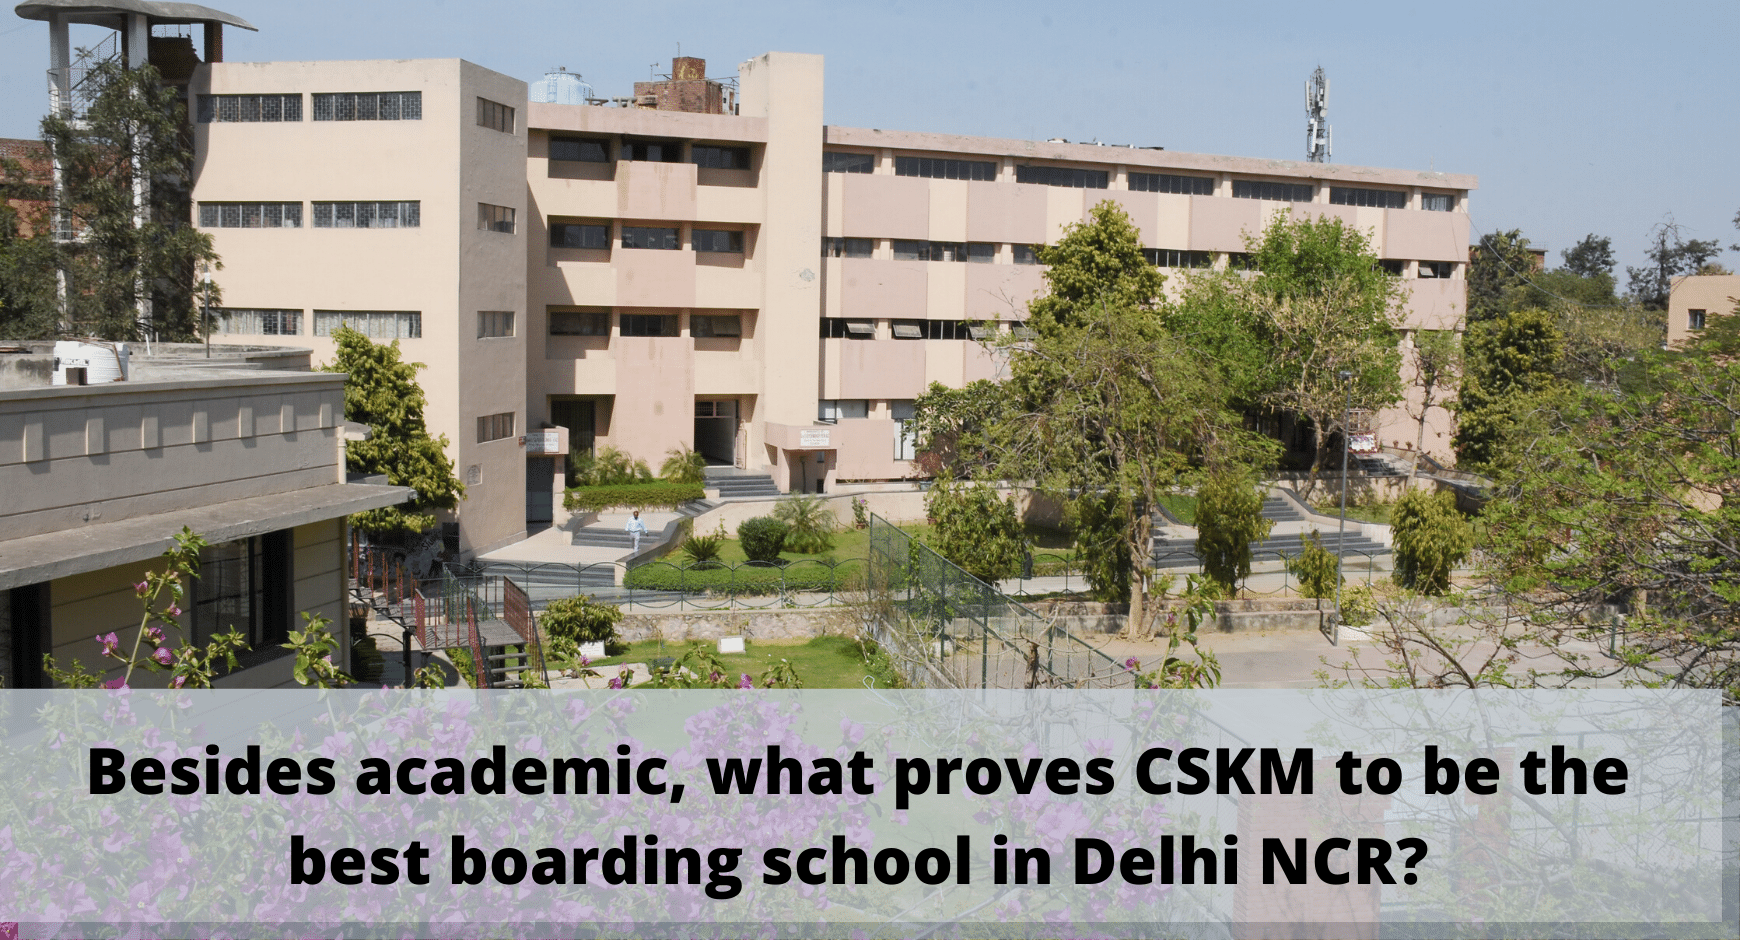 Besides academic, what proves CSKM to be the best boarding school in Delhi NCR?